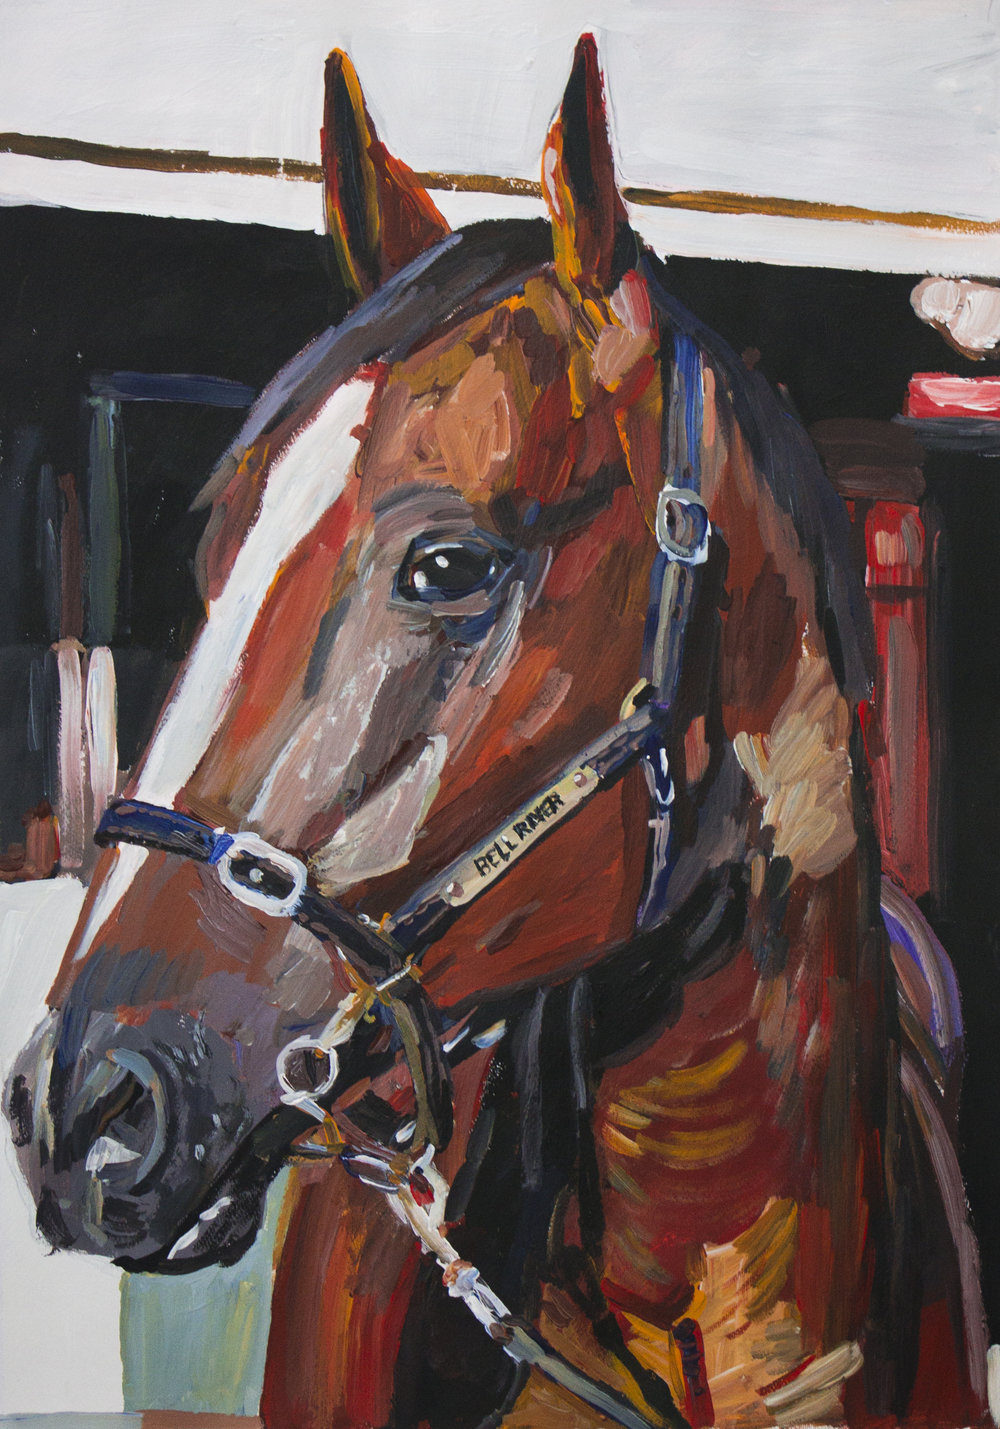 Untitled (Horse), 2015, oil on canvas, 48x68cm